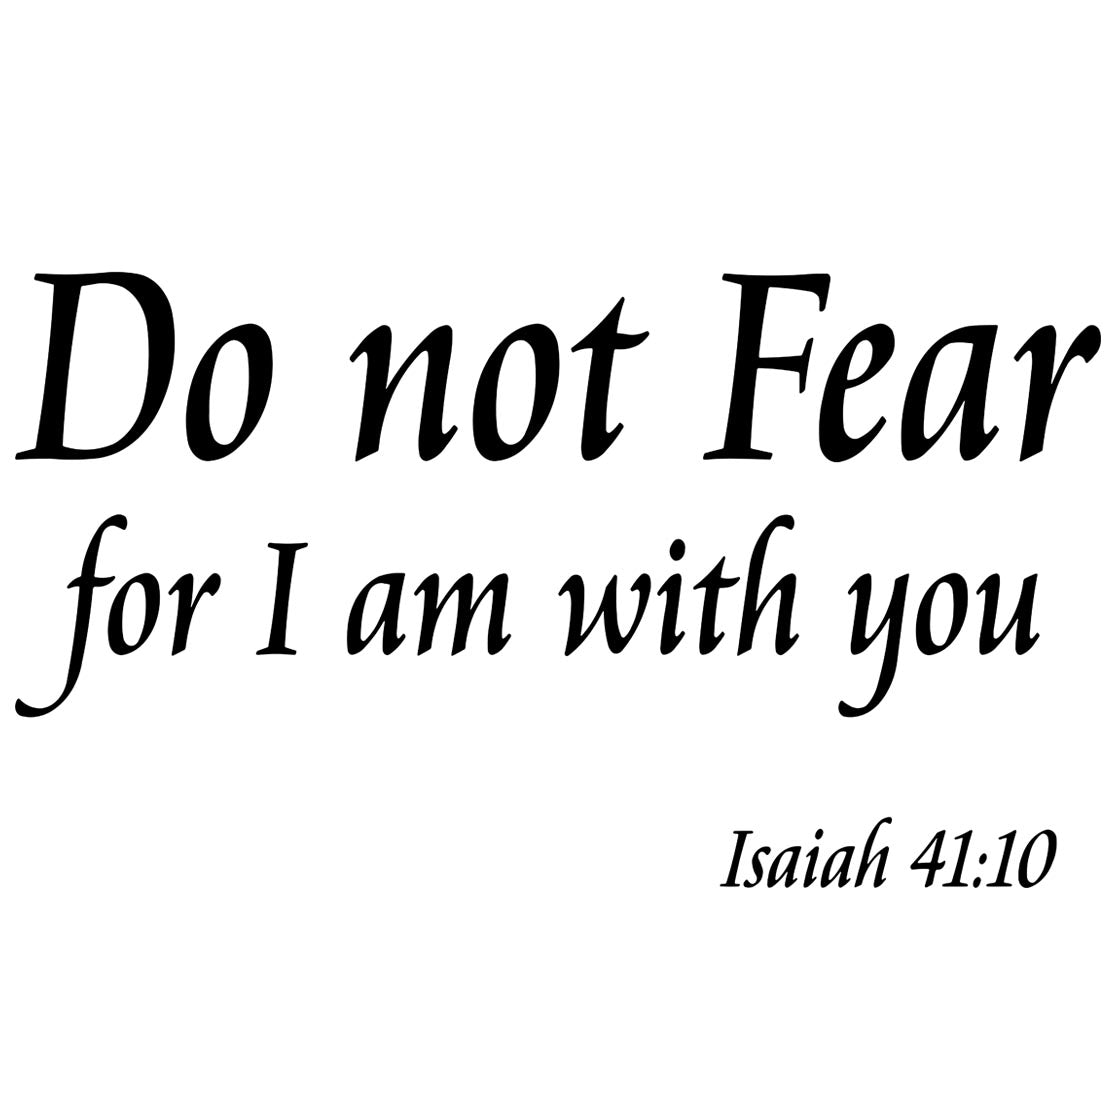 VWAQ Do Not Fear For I Am With You Isaiah 41:10 Vinyl Wall Decal - VWAQ Vinyl Wall Art Quotes and Prints